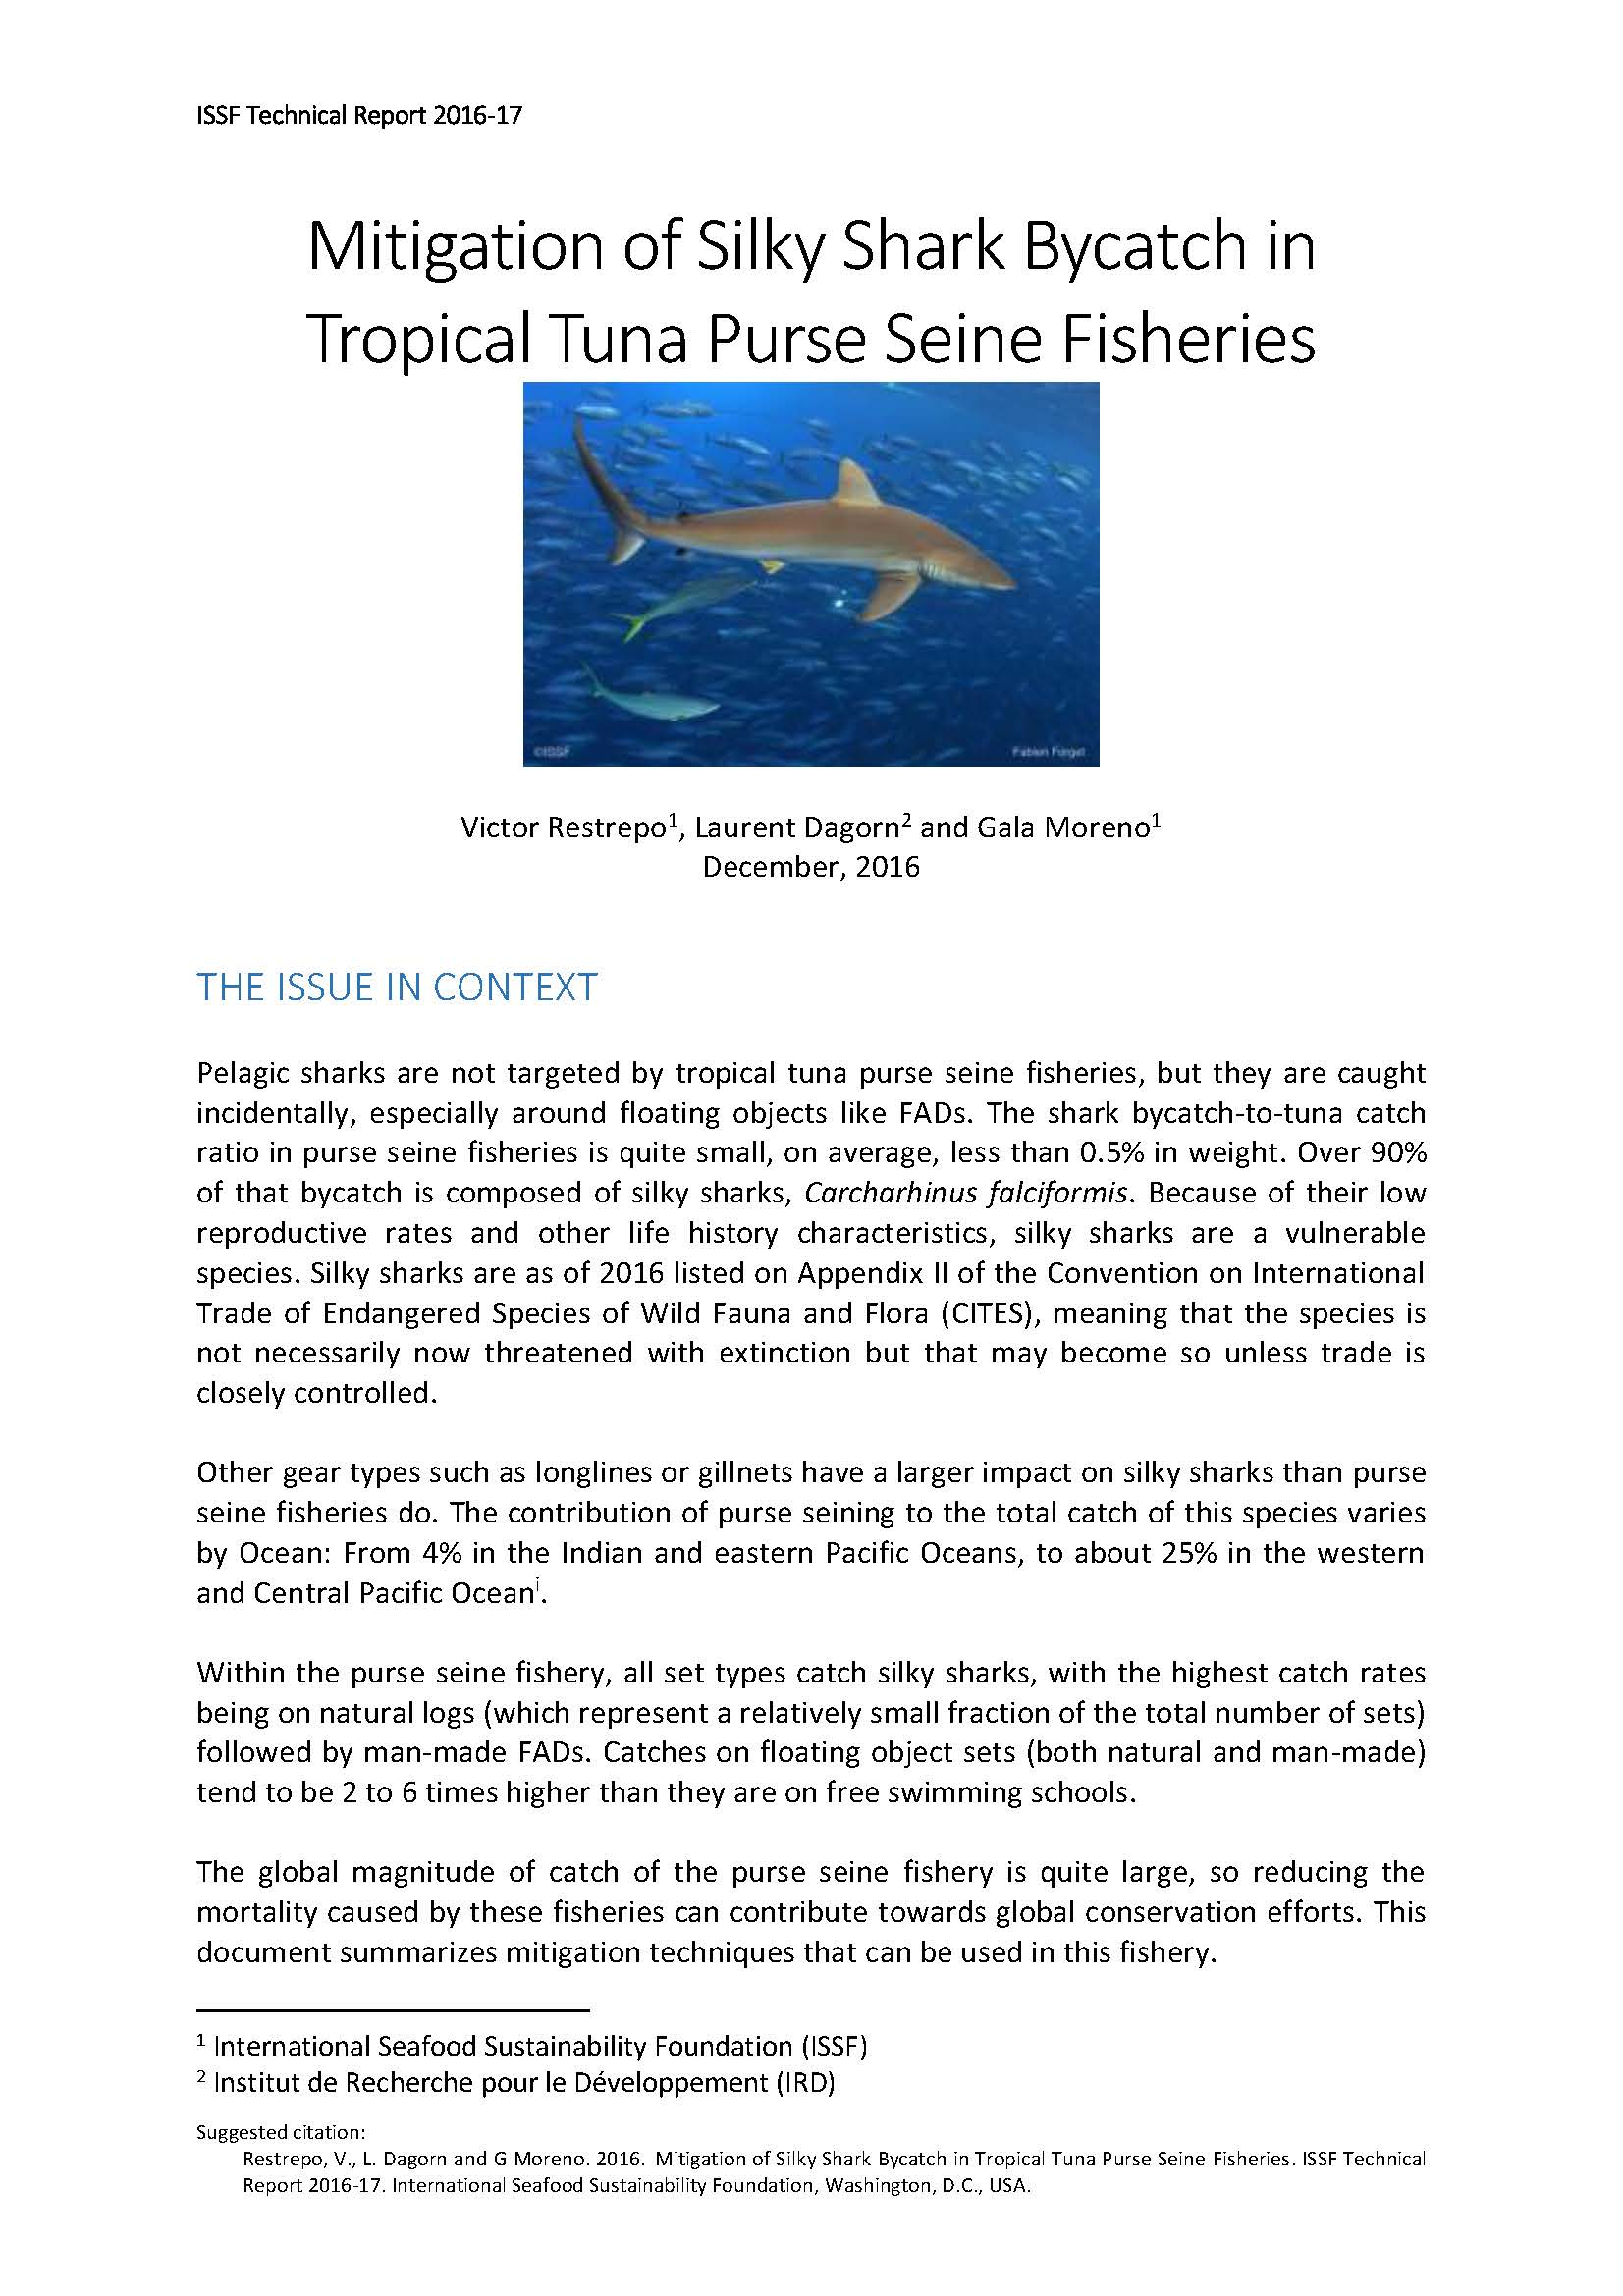 issf-2016-17-mitigation-of-silky-shark-bycatch-in-tropical-tuna-purse-seine-fisheries_page_1